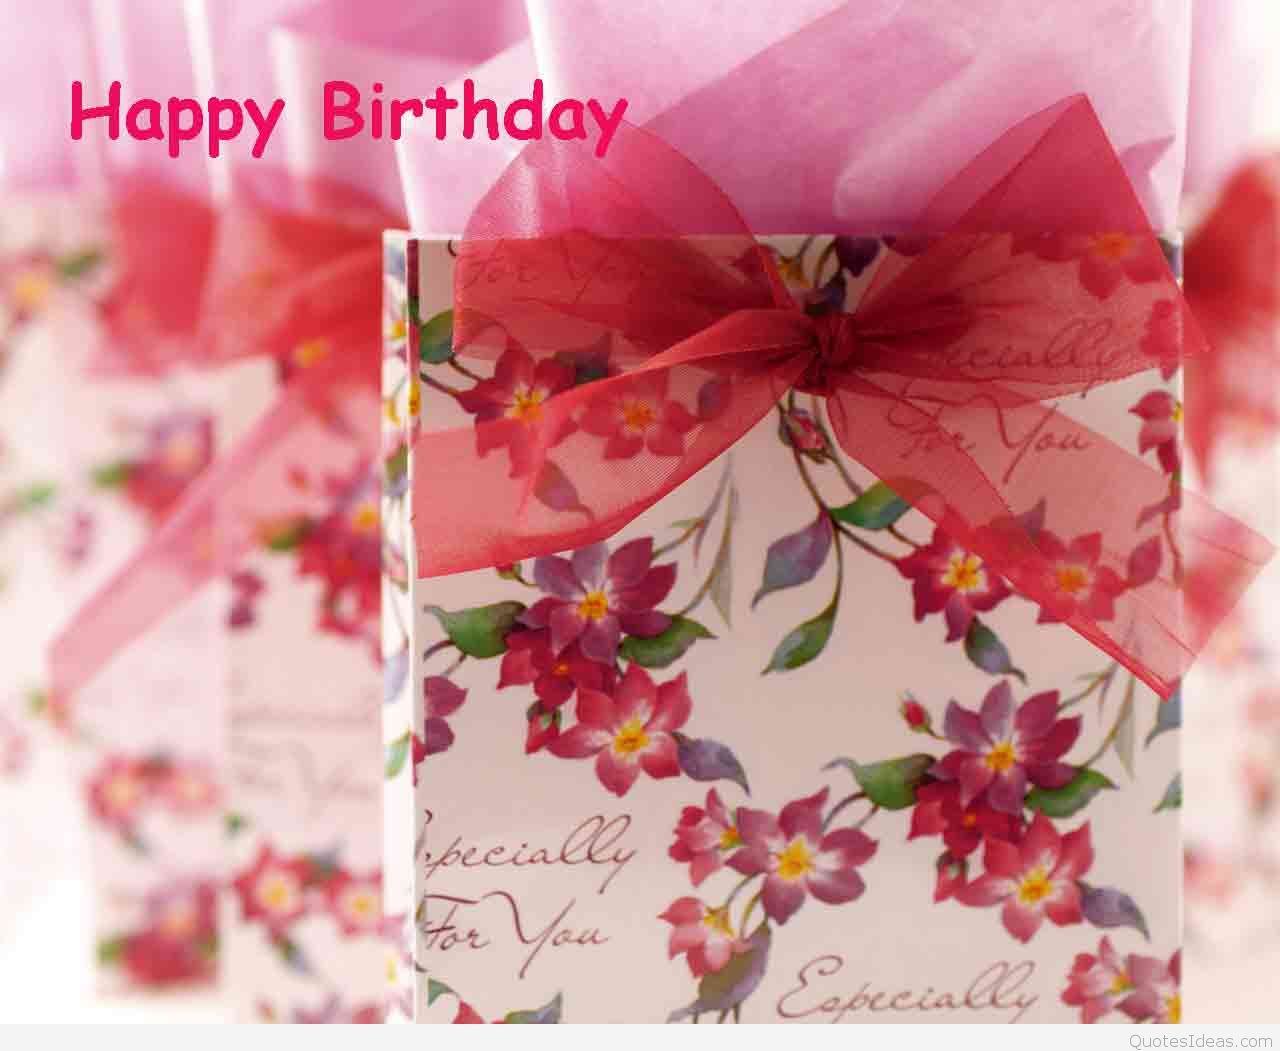 birthday images with quotes free download ; 36d21ad89a35b0480d721b4961e5653a